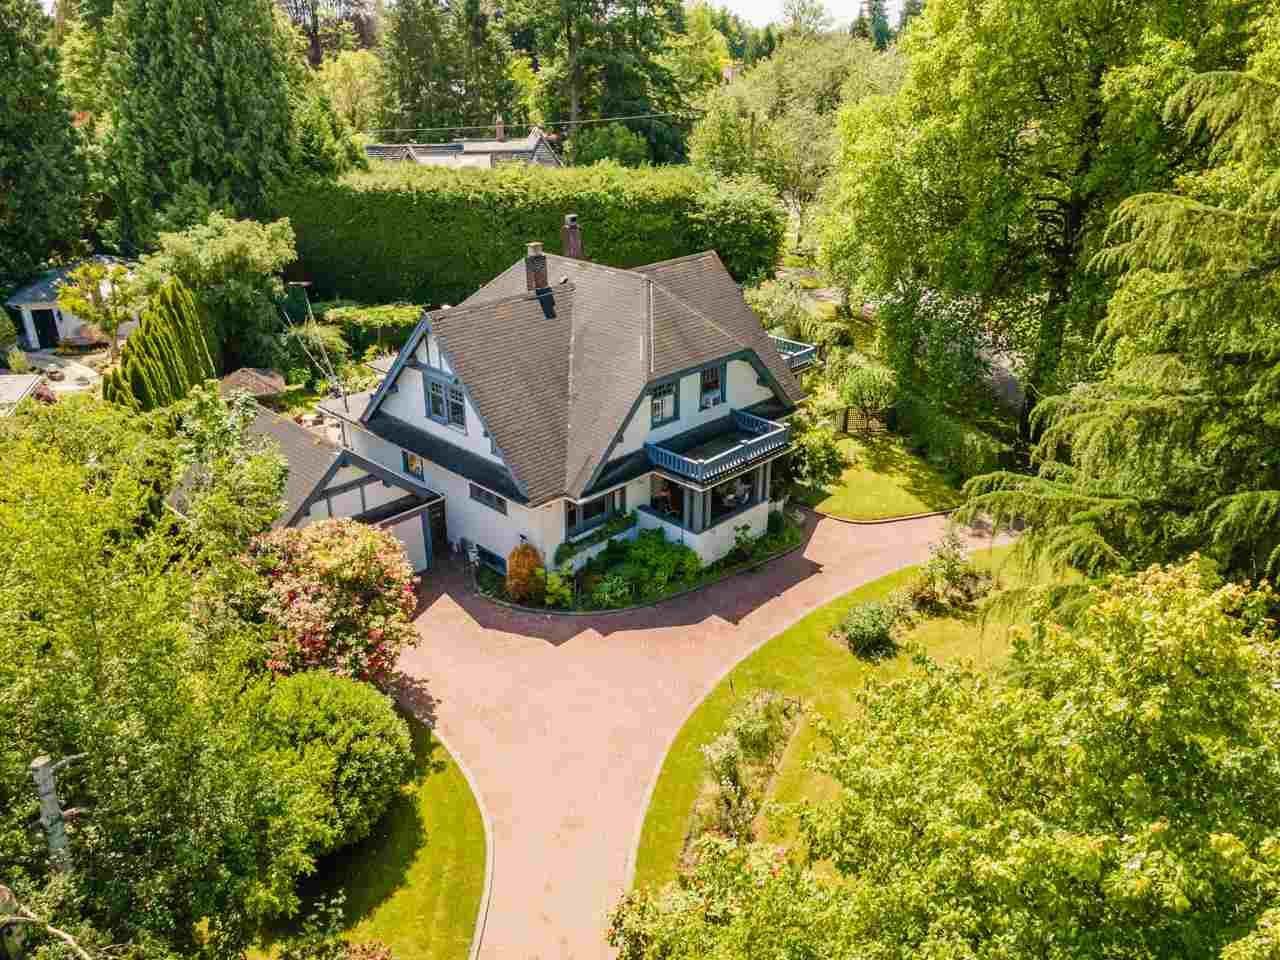 Main Photo: 1650 AVONDALE Avenue in Vancouver: Shaughnessy House for sale (Vancouver West)  : MLS®# R2591630